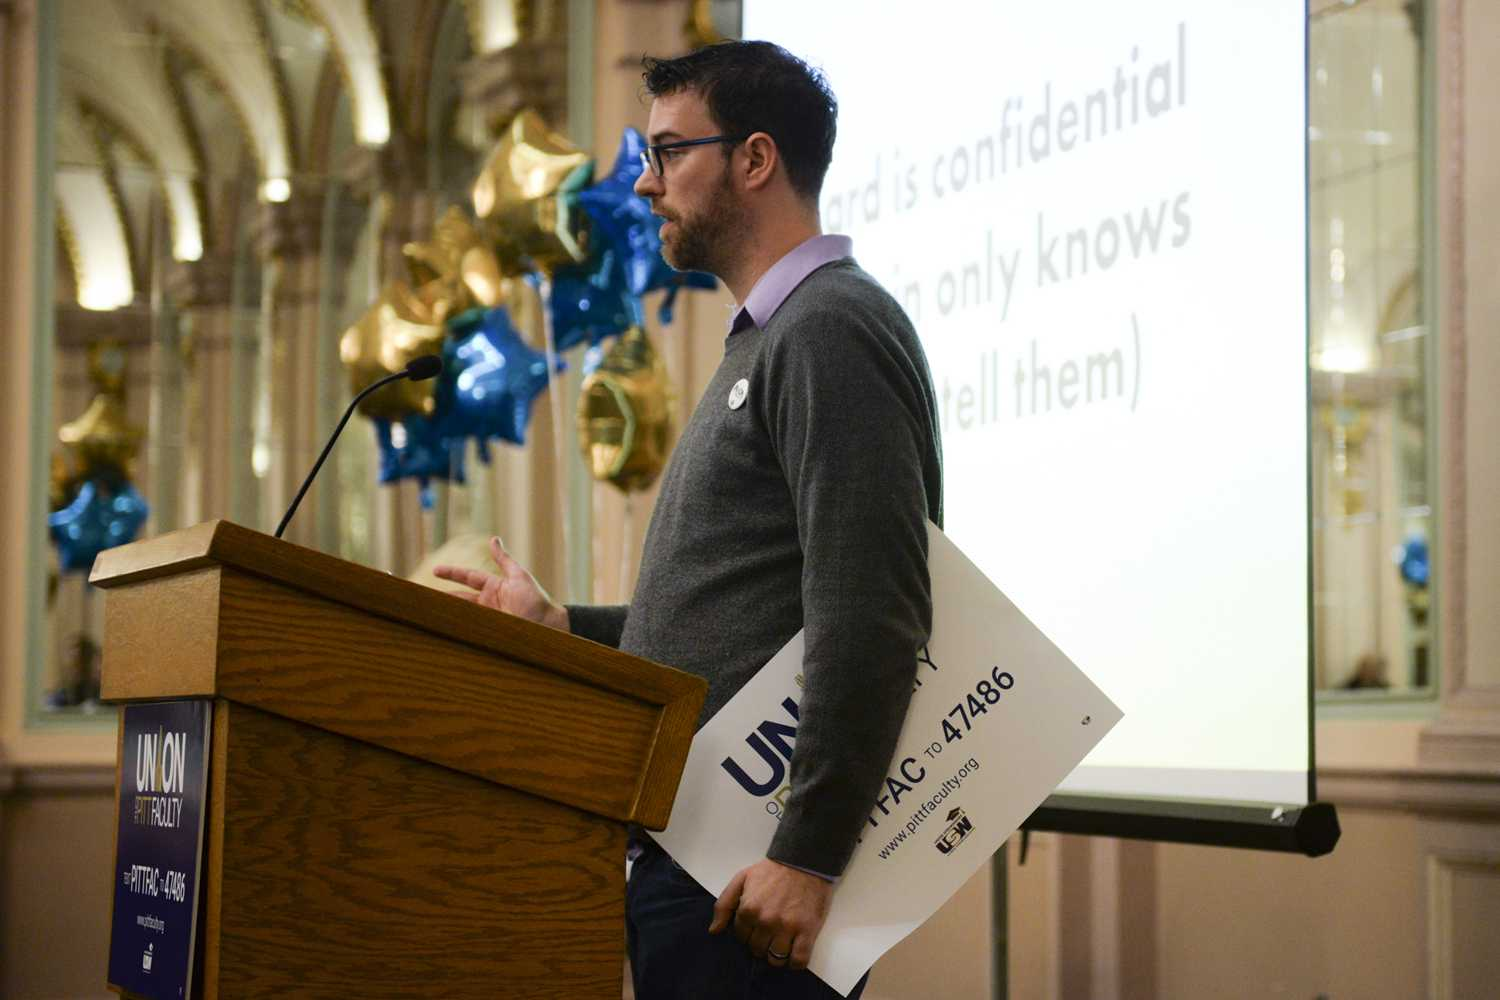 Paul Johnson, a faculty union organizer and Pitt communications professor, gives information about the union's progress to about 50 people in the William Pitt Union Ballroom in January 2018.